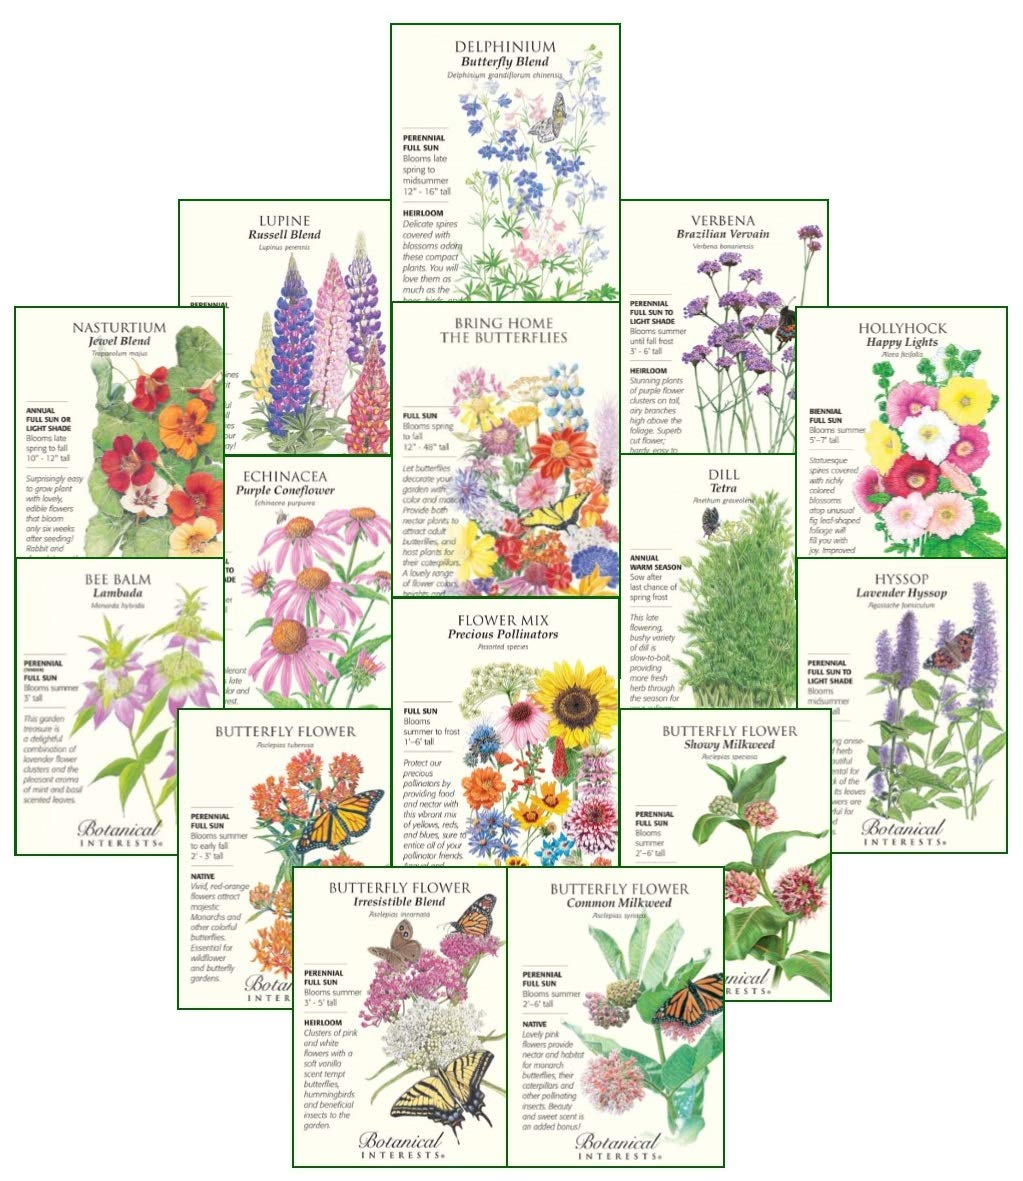 Botanical Interests''Butterfly Garden and Monarch Way Station'' Flower Seed Collection - 15 Packets with Gift Box. $1 Goes to Save Our Monarchs Foundation! by Botanical Interests